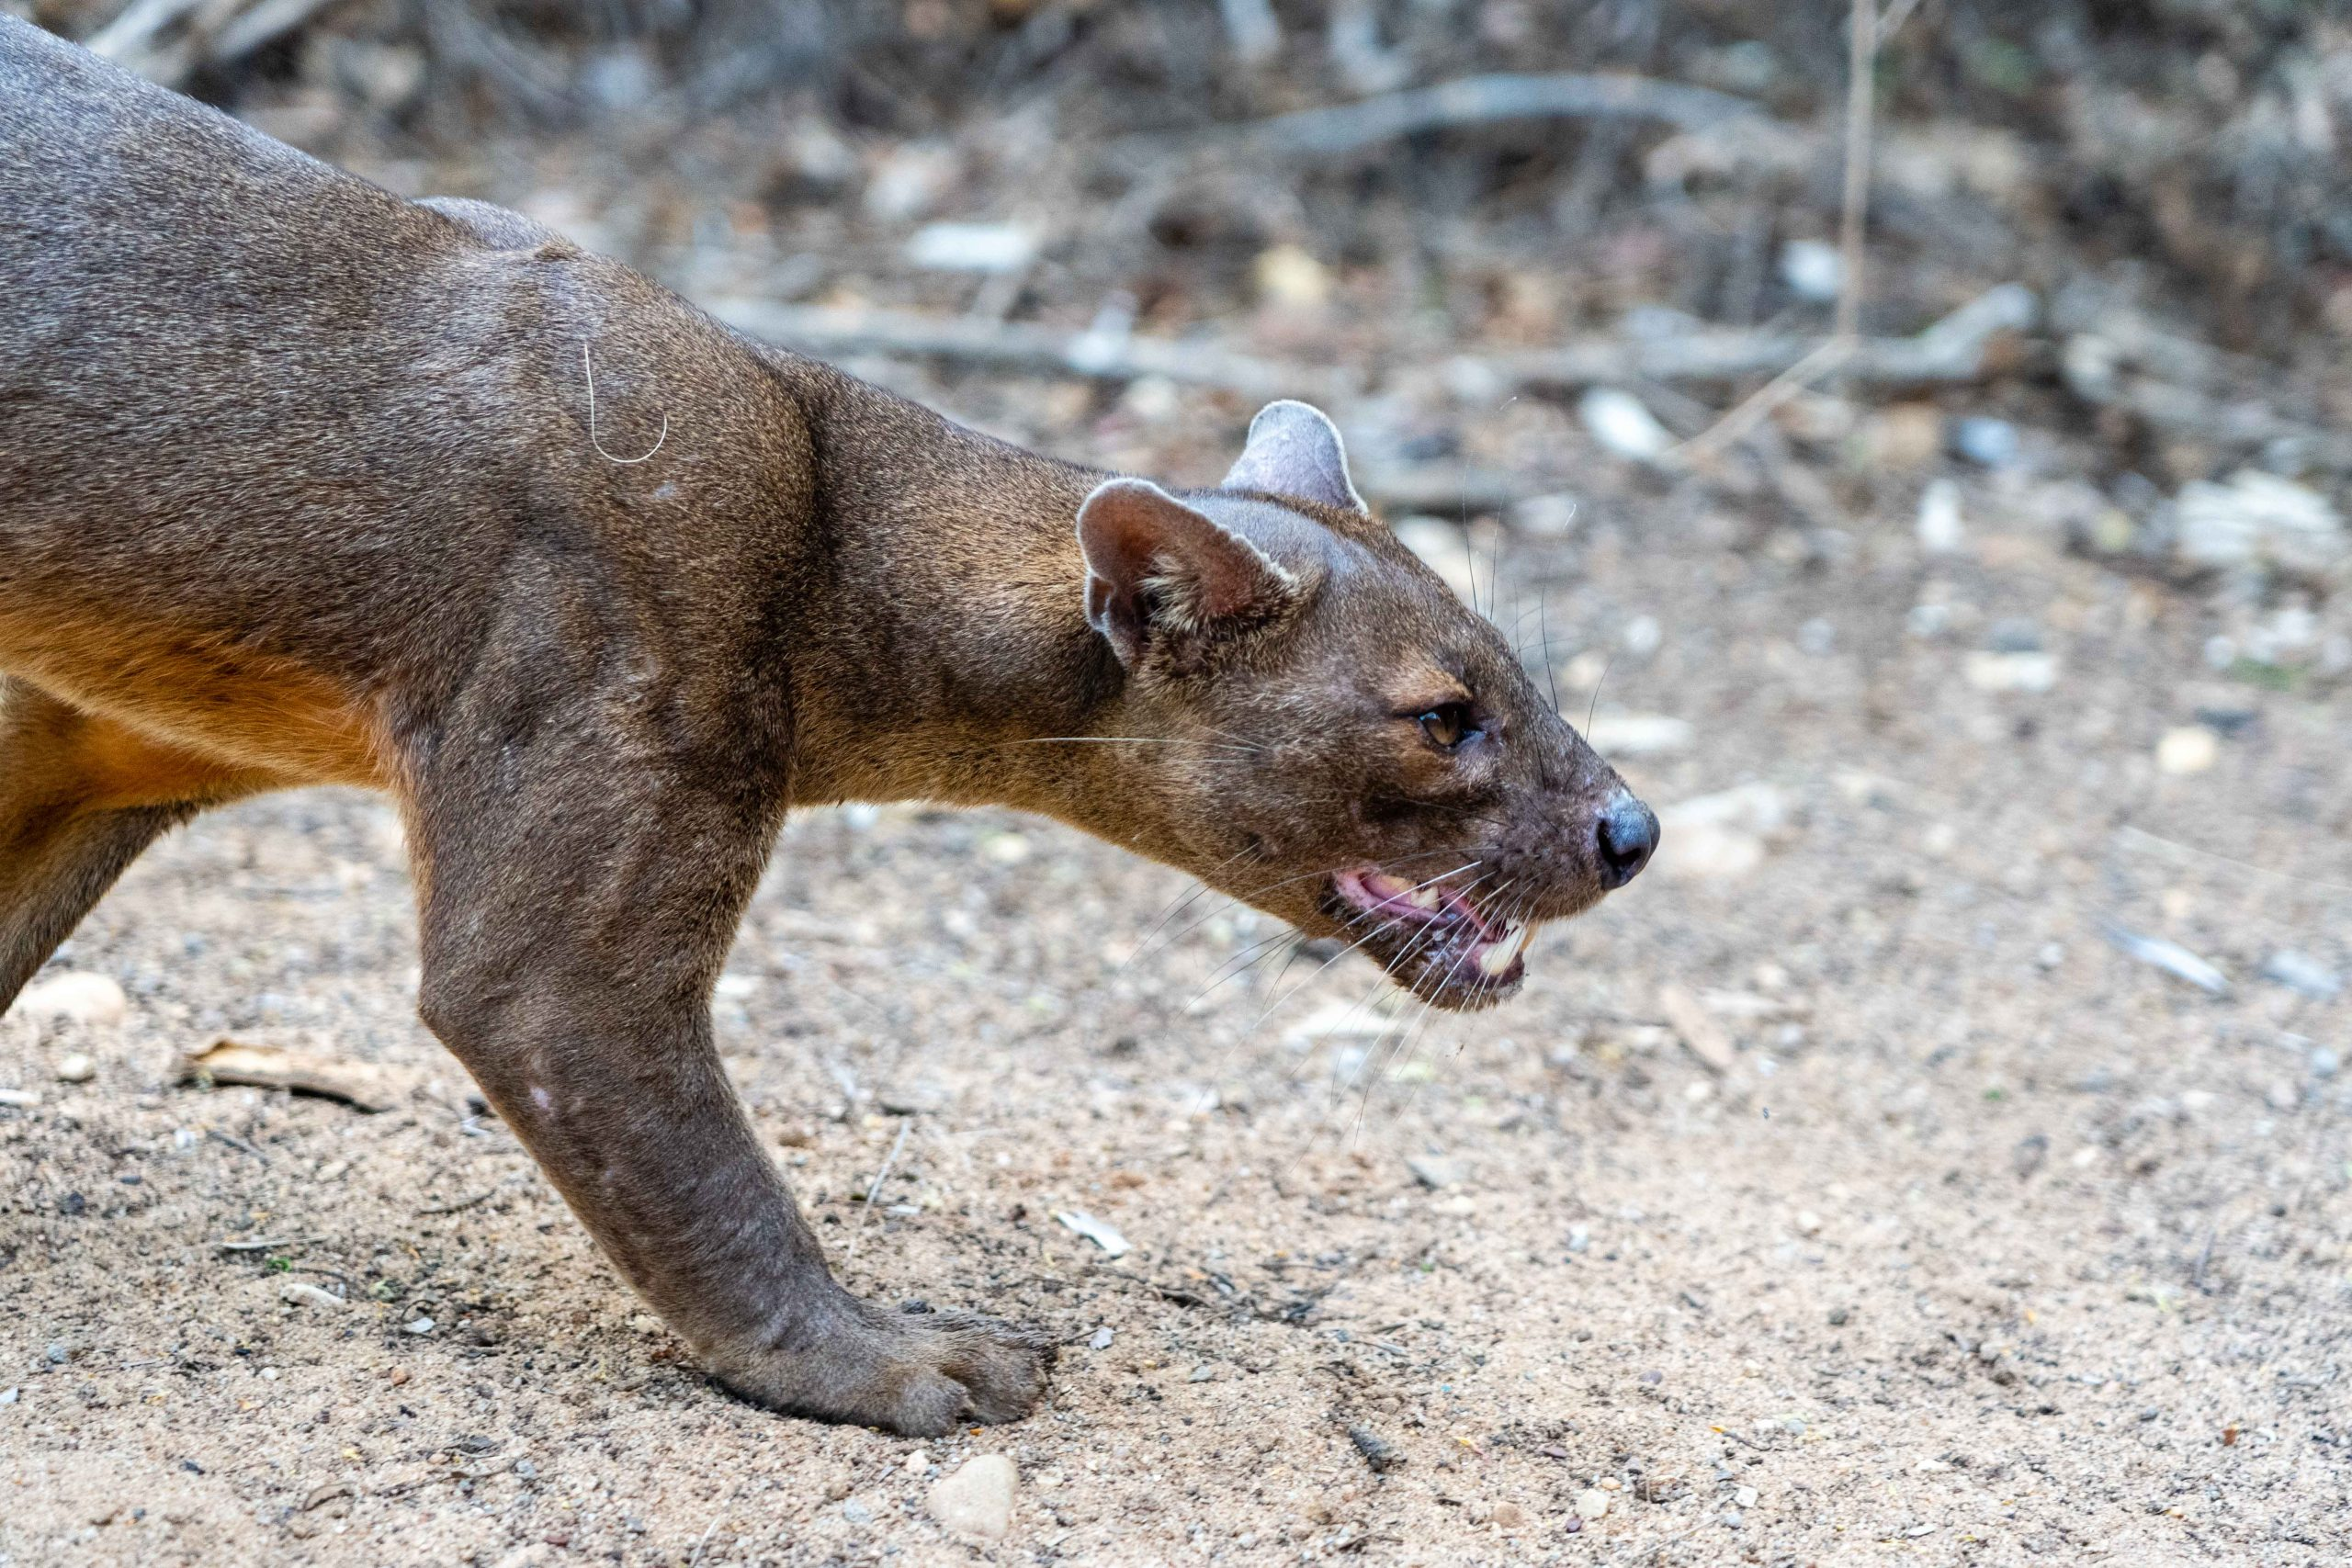 A close relative of the mongoose, the cat-like fossa is a carnivorous mammal unique to the forests of Madagascar.